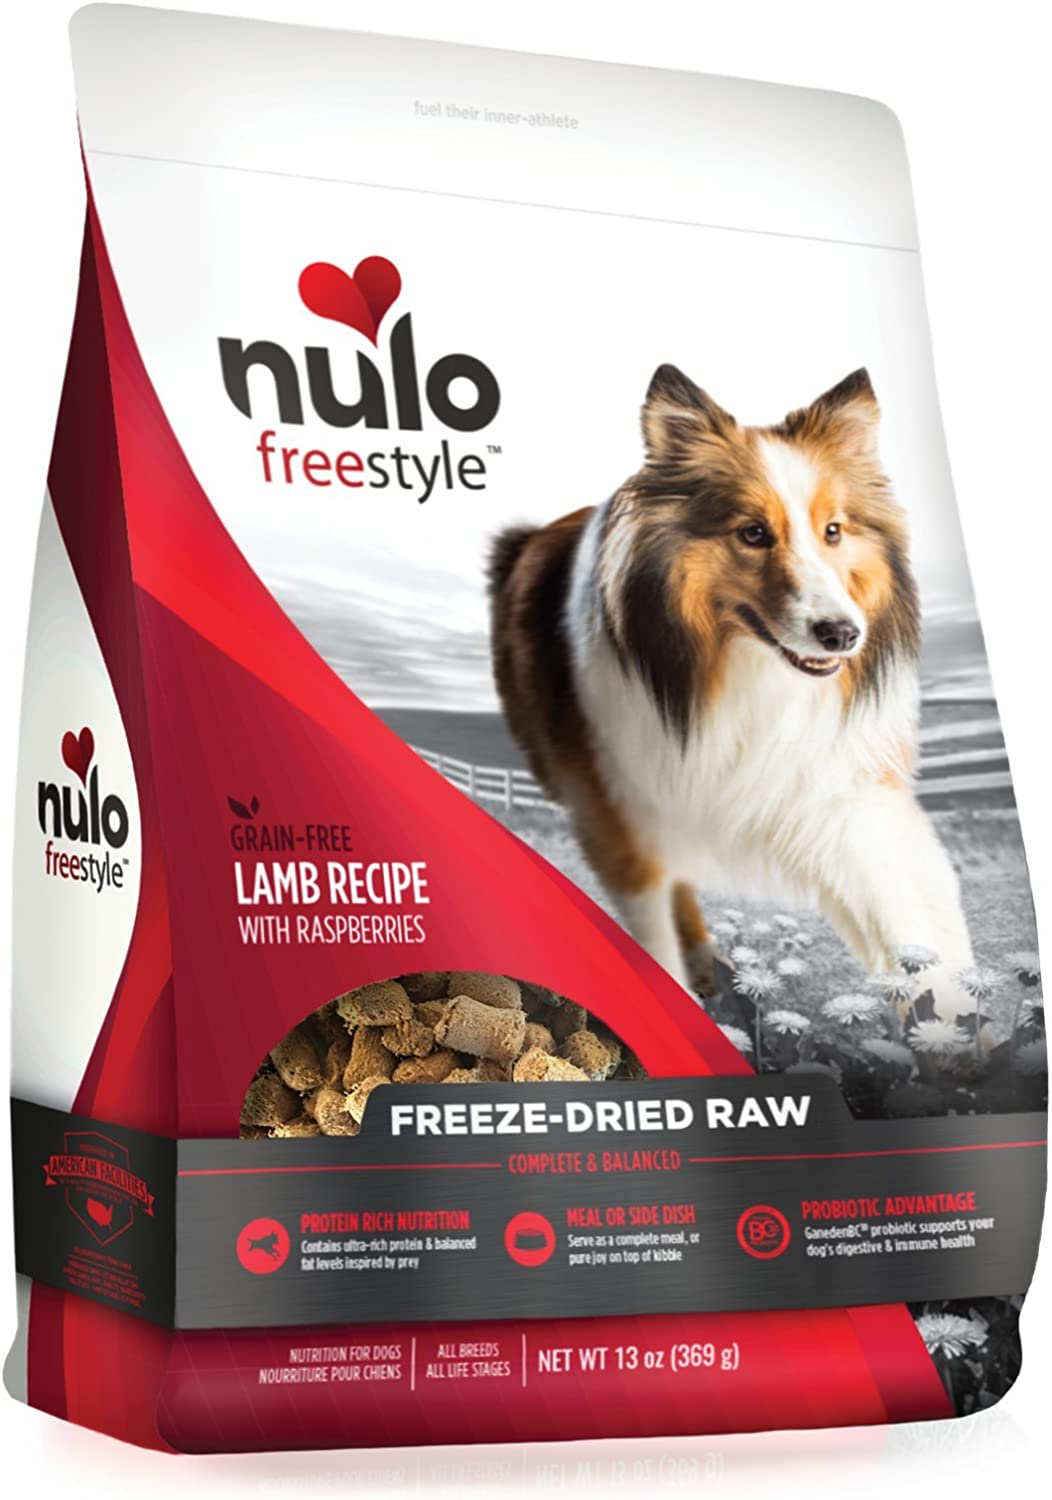 Nulo Freeze Dried Raw Dog Food For All Ages & Breeds: Natural Grain Free Formula With Ganedenbc30 Probiotics For Digestive & Immune Health - Lamb Recipe With Raspberries - 13 Oz Bag